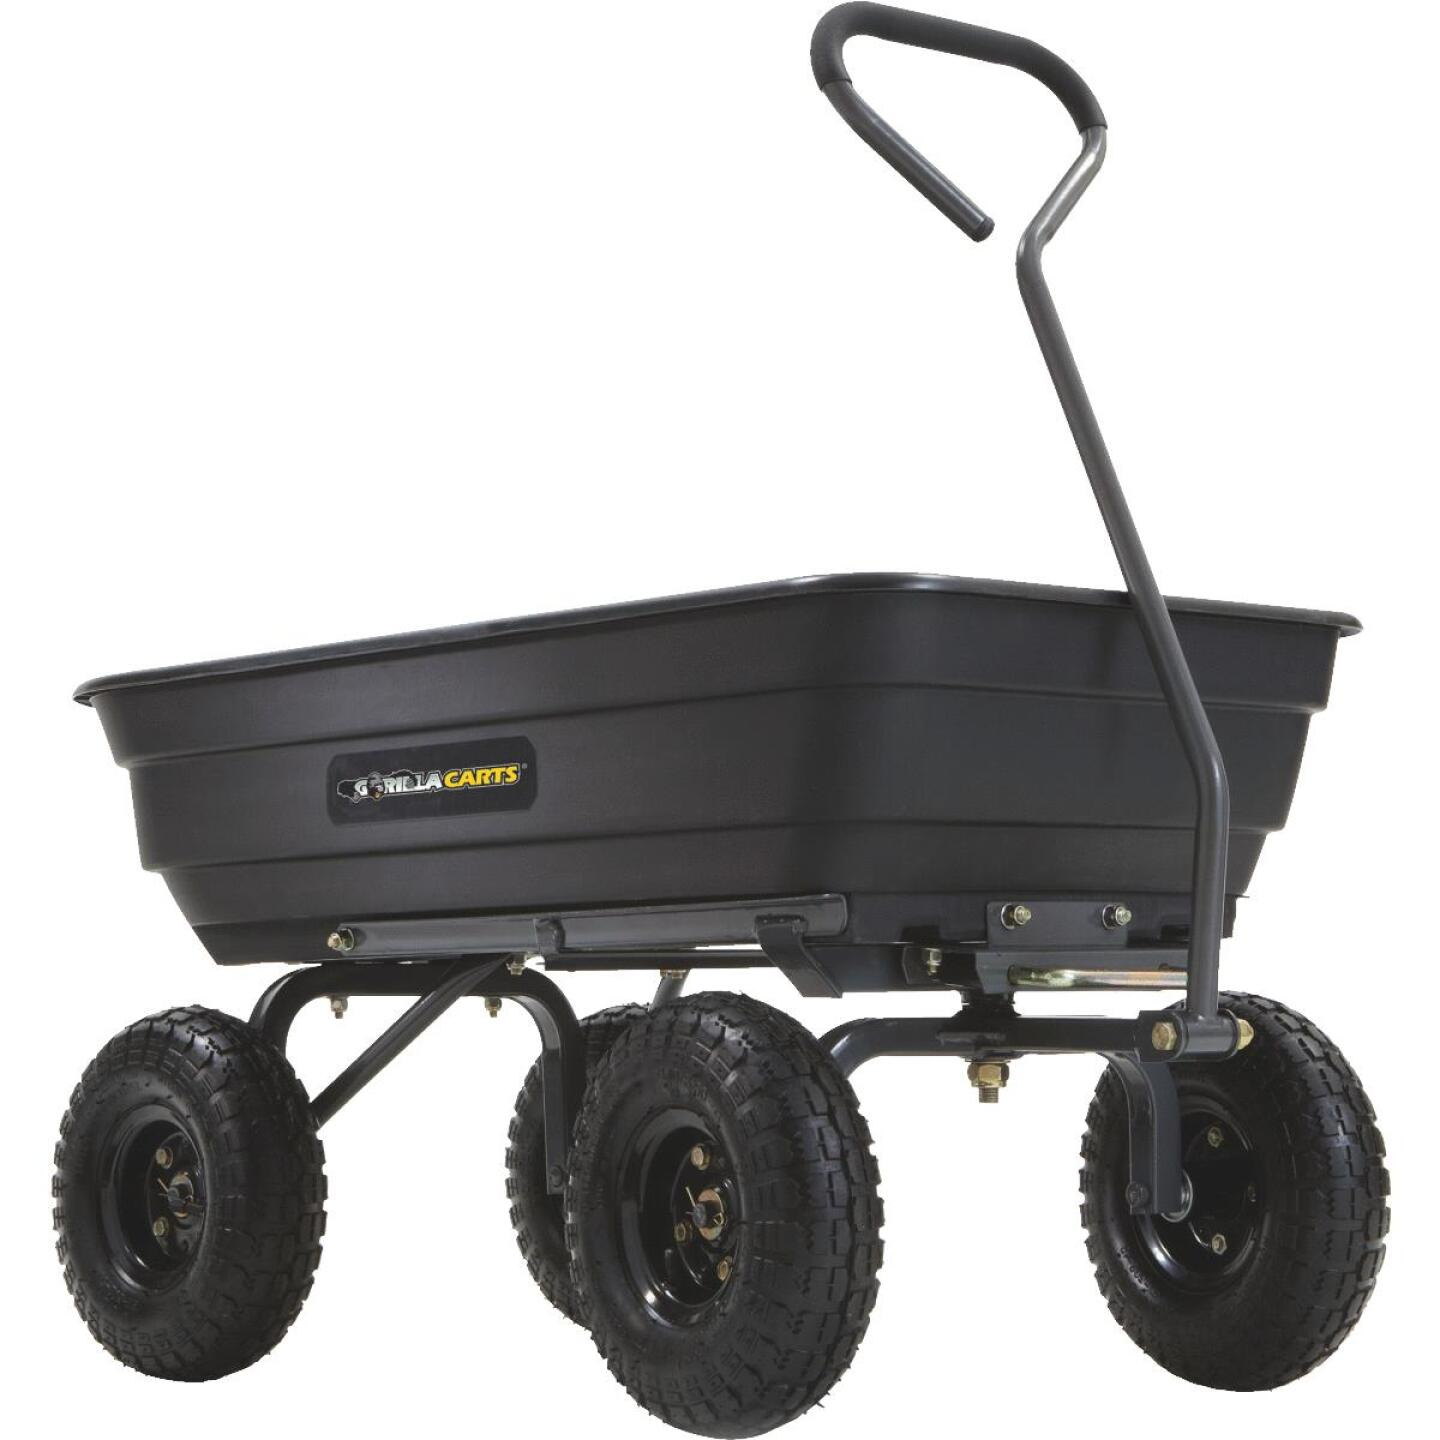 Gorilla Carts 4 Cu. Ft. 600 Lb. Poly Garden Cart Image 1